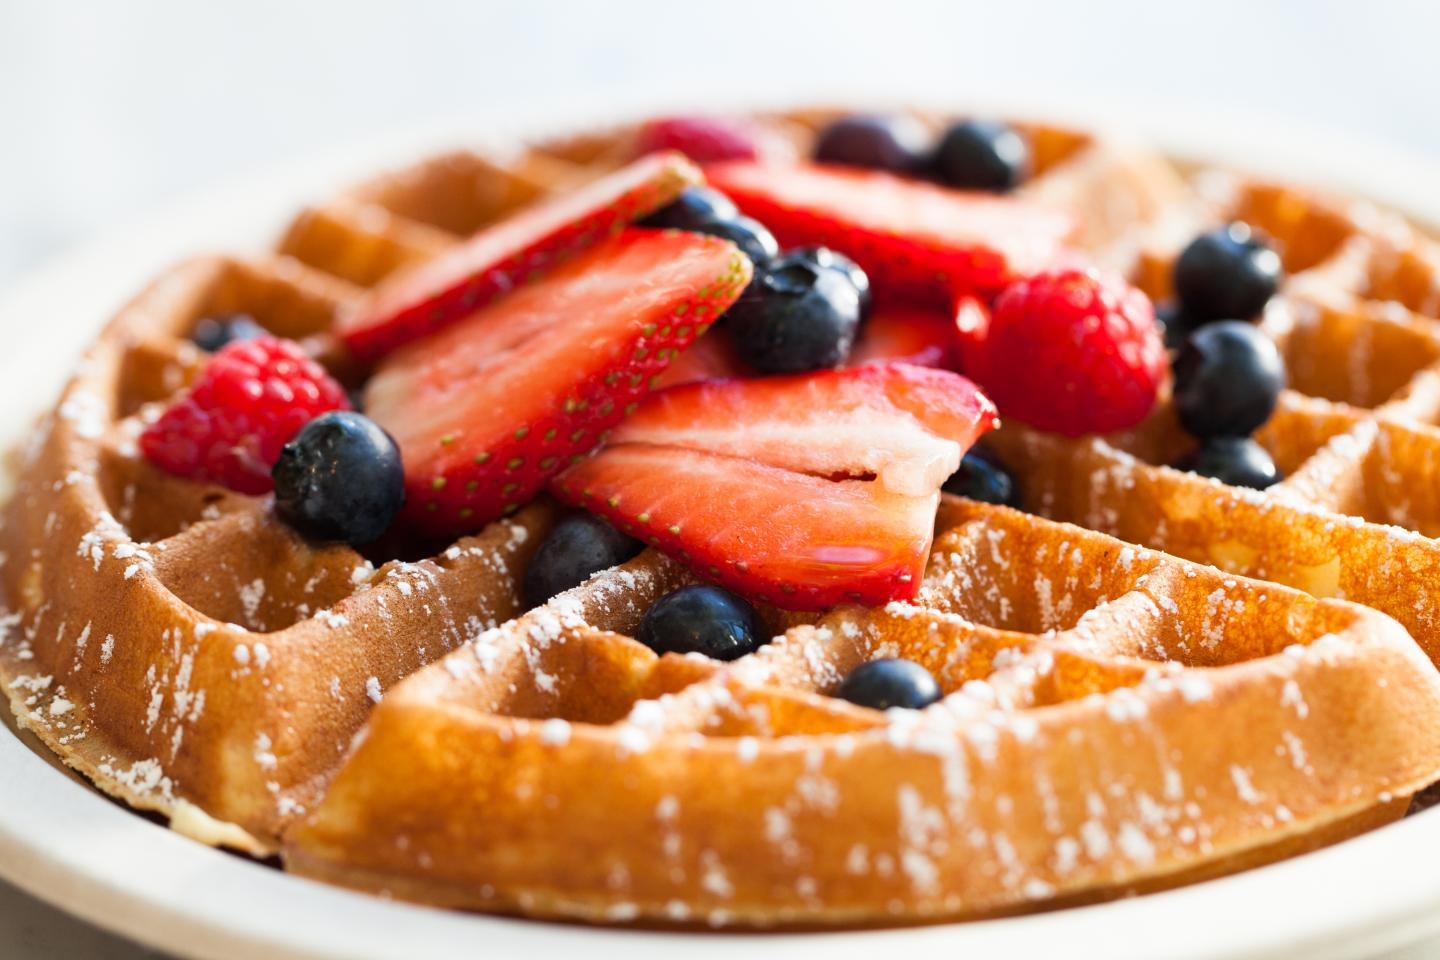 waffles from community canteen